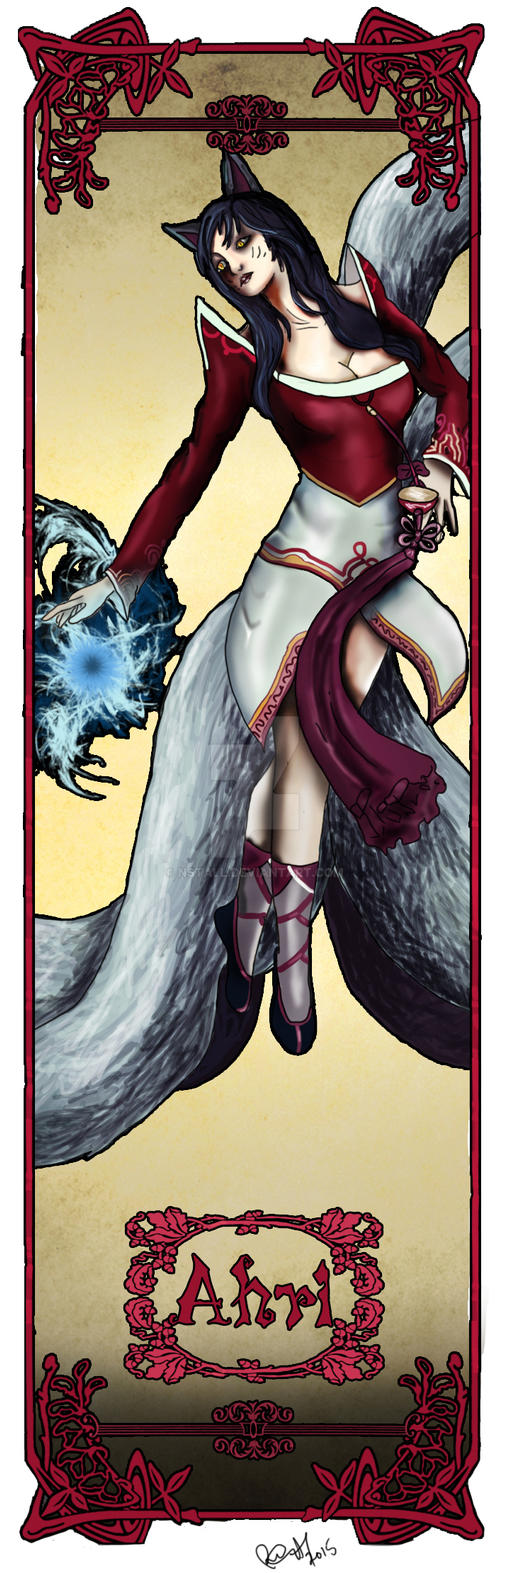 Ahri LOL - bookmarks by NSTaLL